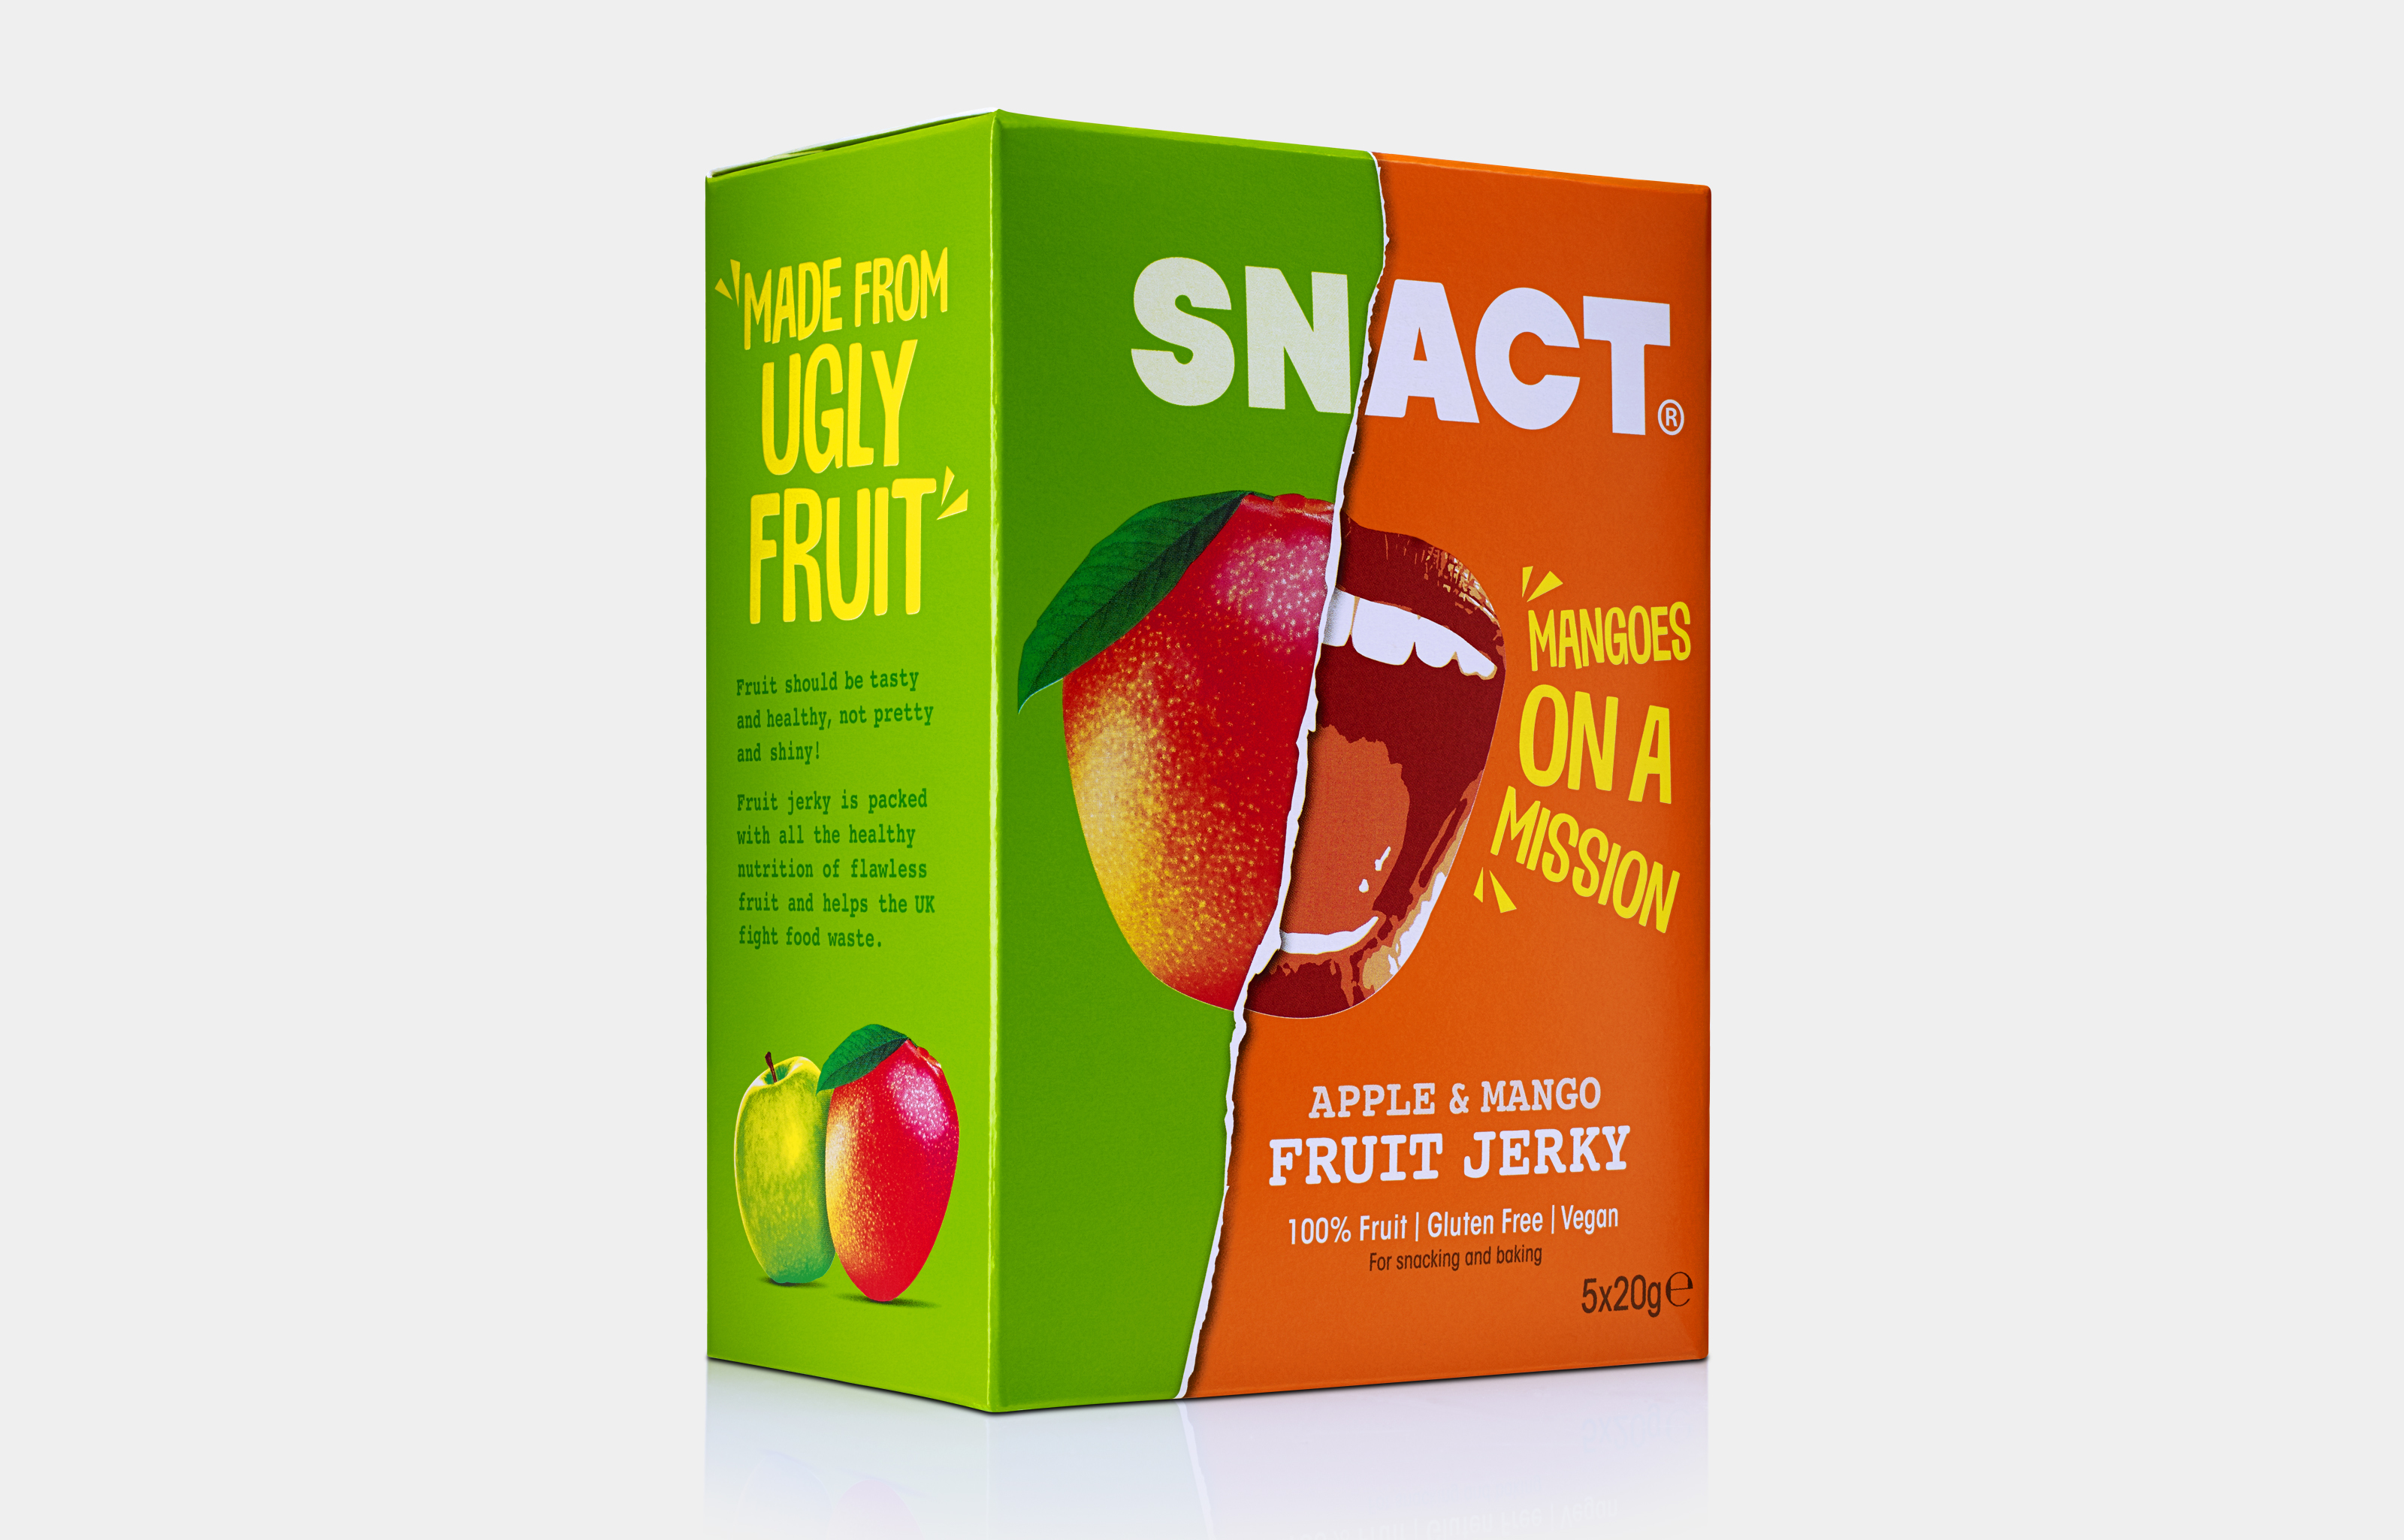 Snact Apple Mango Box Col